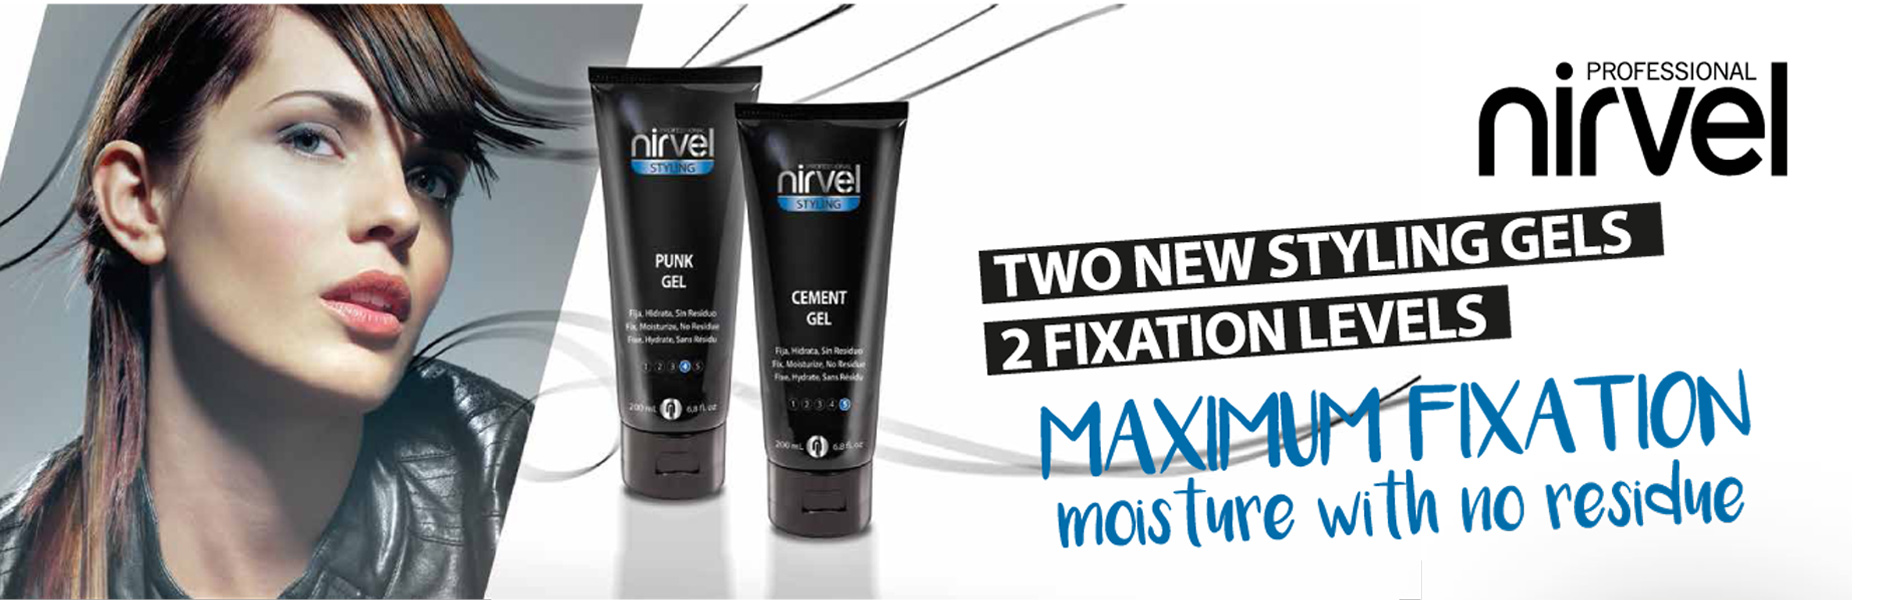 STYLING GEL MAXIMUM FIXATION NIRVEL